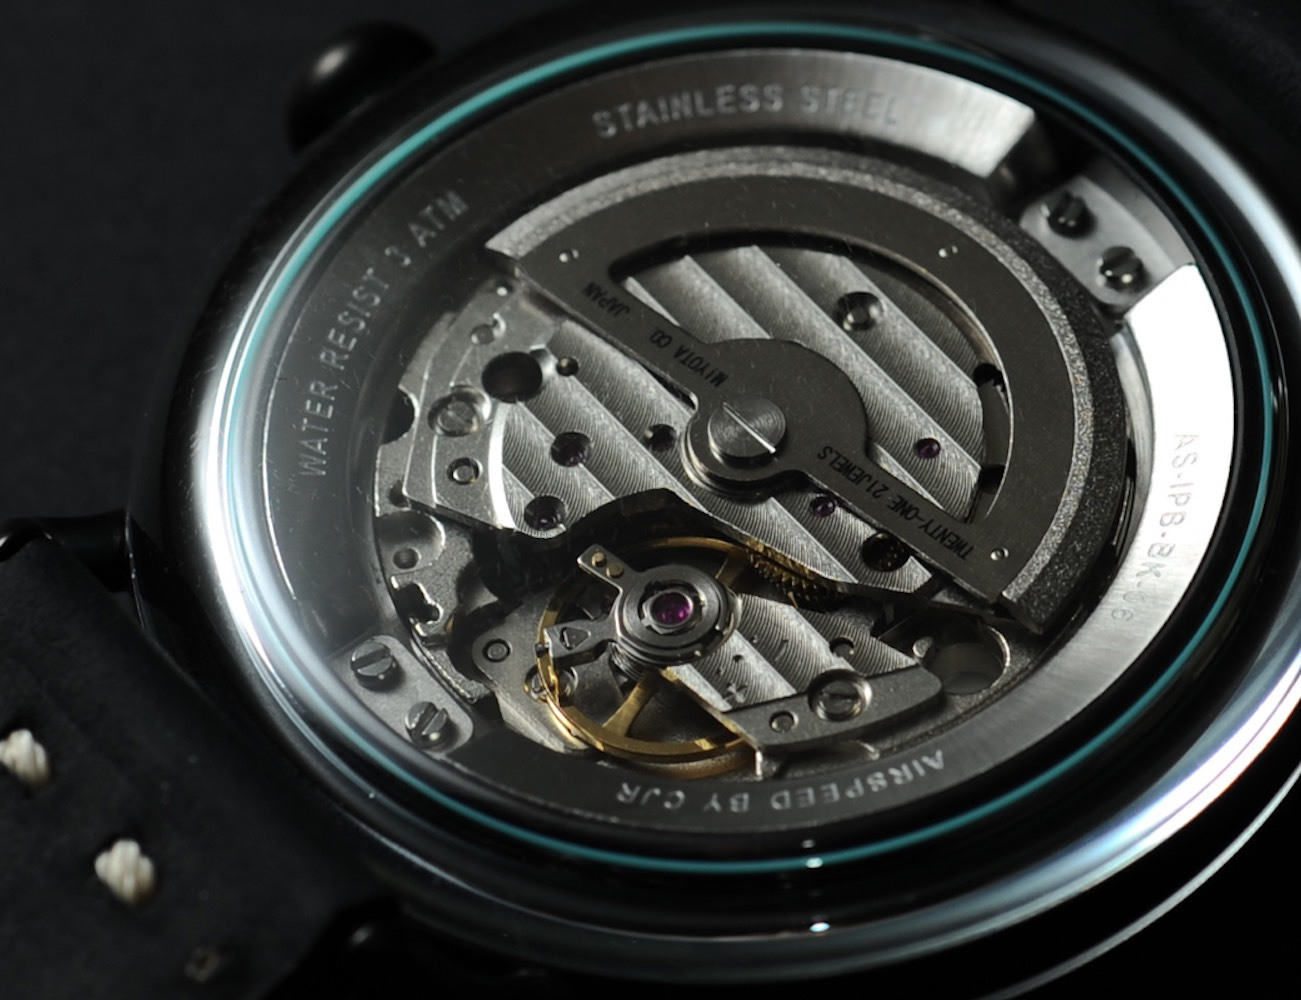 AIRSPEED – The FIRST Curved Regulator Watch For All